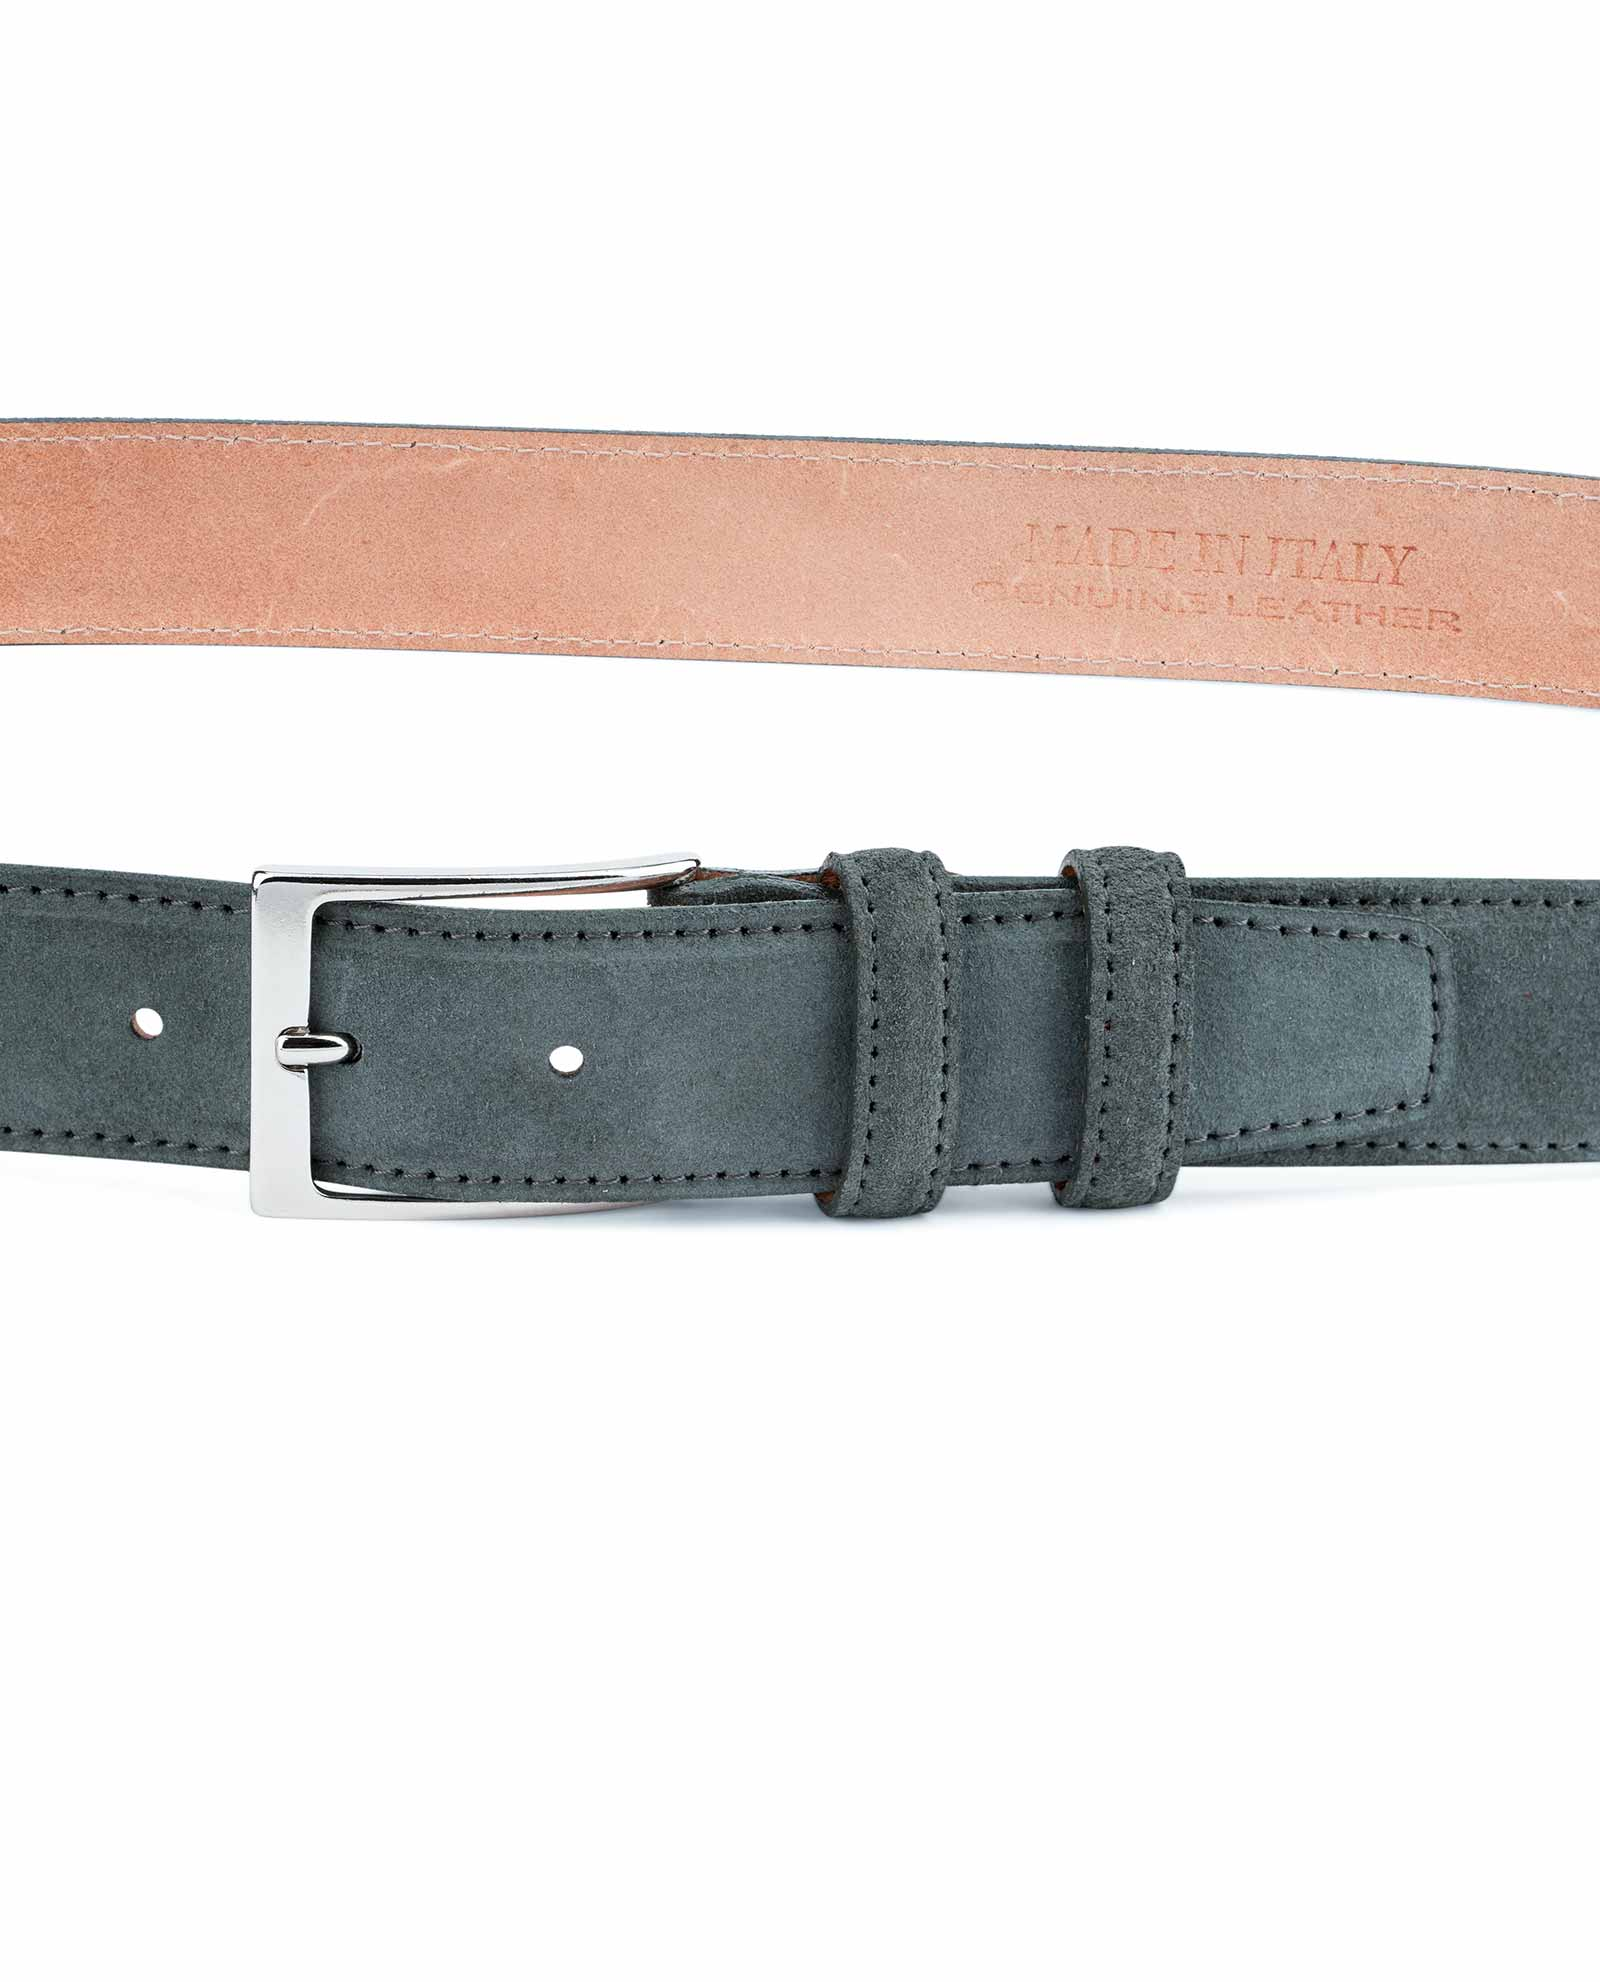 Dark Brown suede belt Men/'s 100/% Genuine leather by Capo Pelle Made in Italy